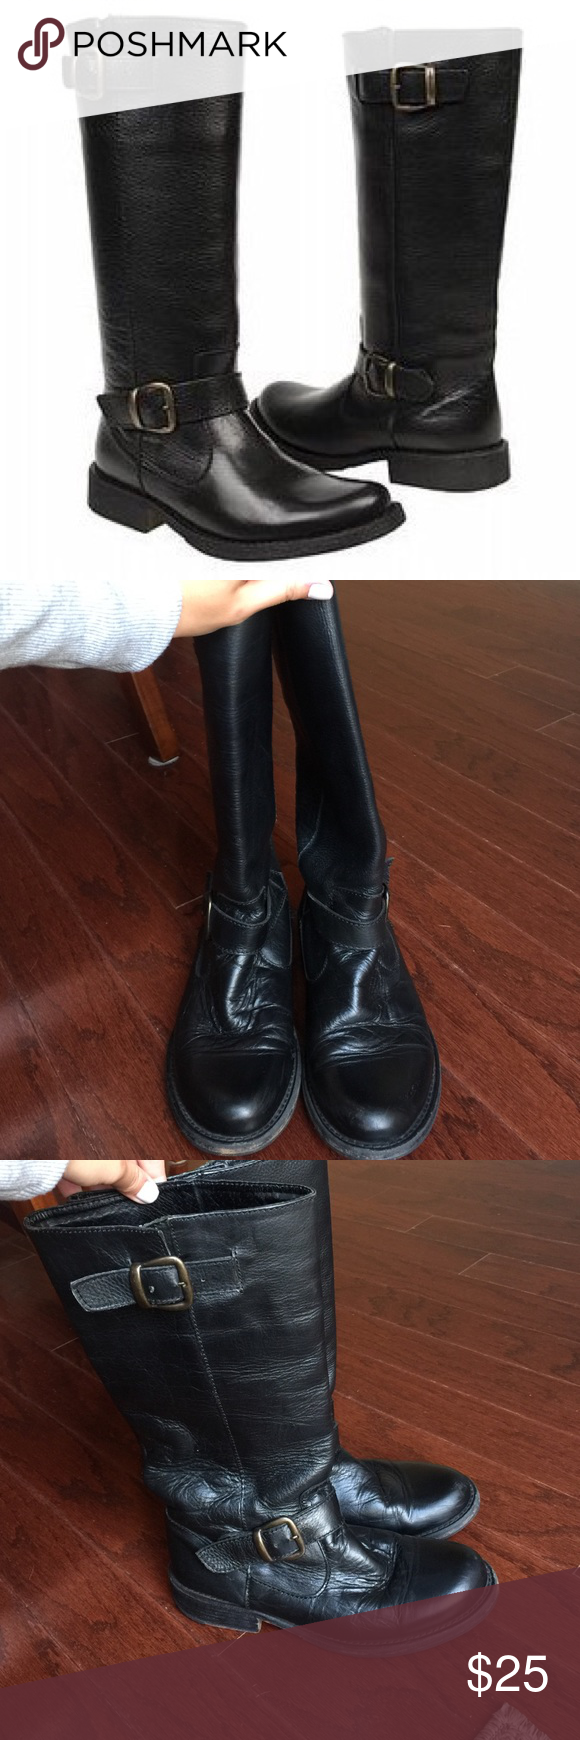 Steve Madden boots FRENCCHH FRENCCHH Steve Madden boots in black size 7! Great condition Steve Madden Shoes